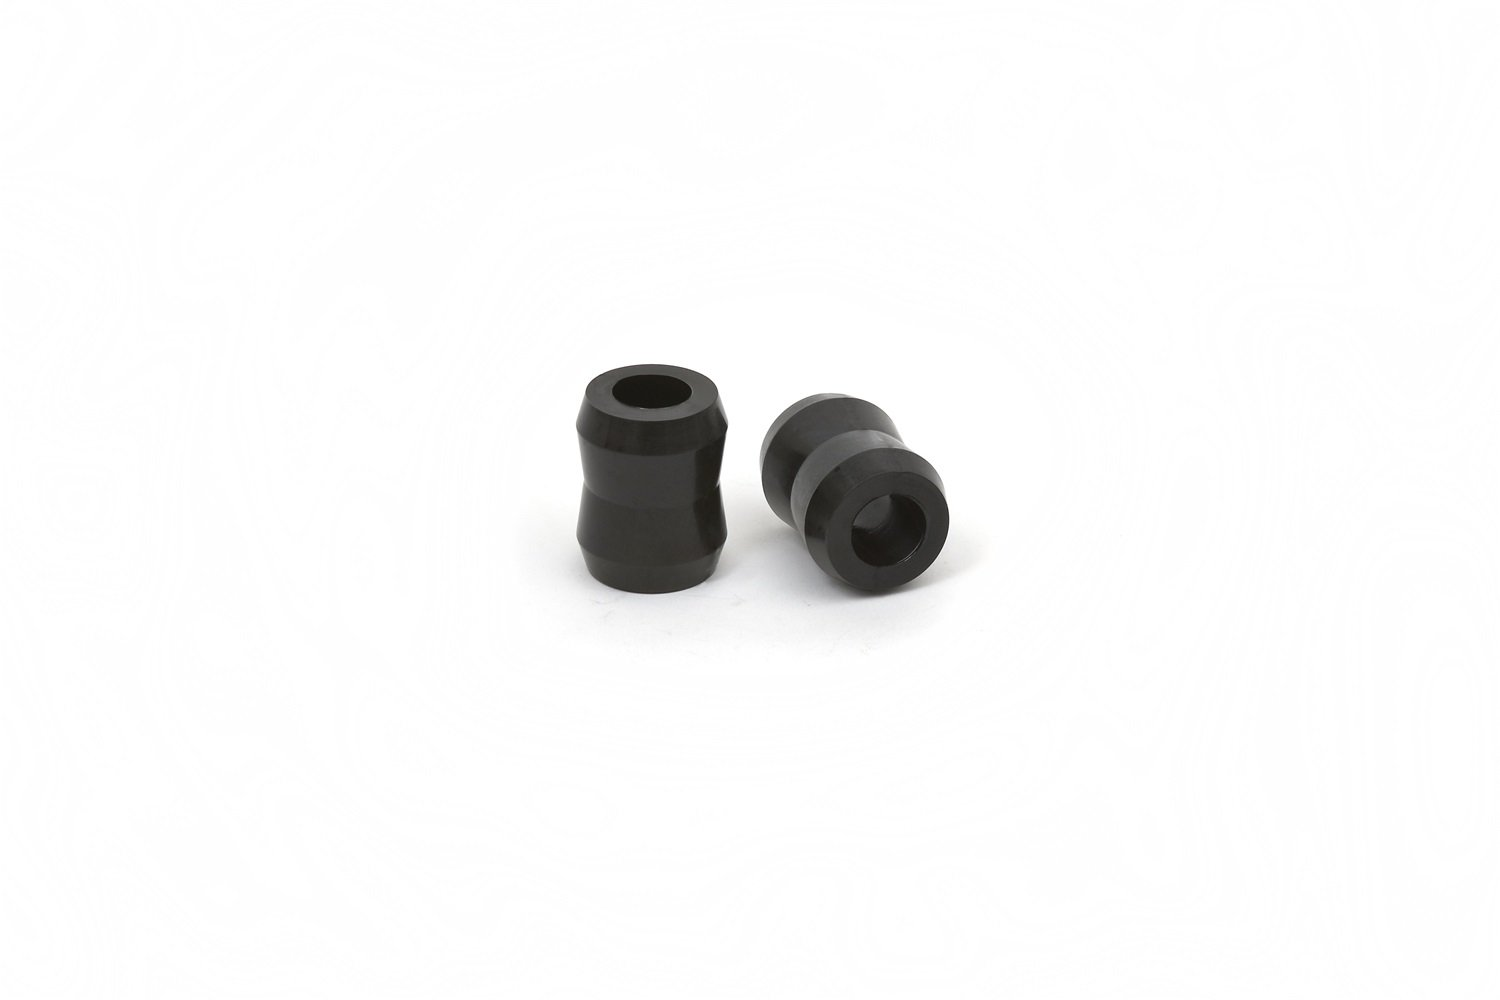 Daystar KU08007BK Black 3/4-Inch I.D. Standard Hourglass Shock Eye Bushing - Pair